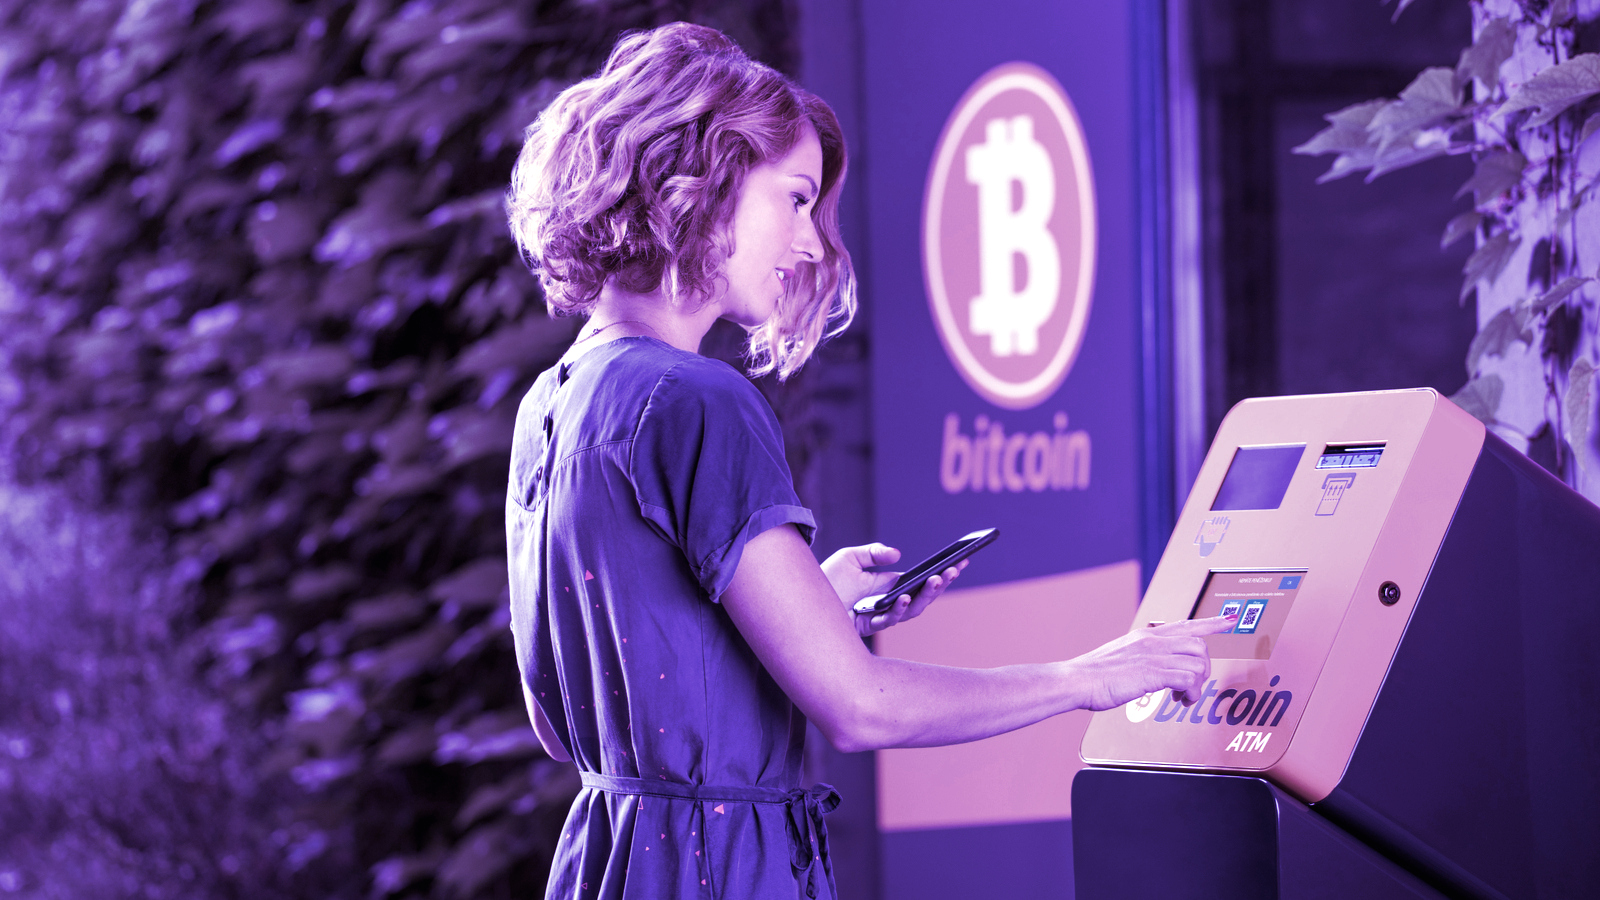 Bitcoin ATM Operators Form Coalition to Improve 'Lax Compliance Policies'